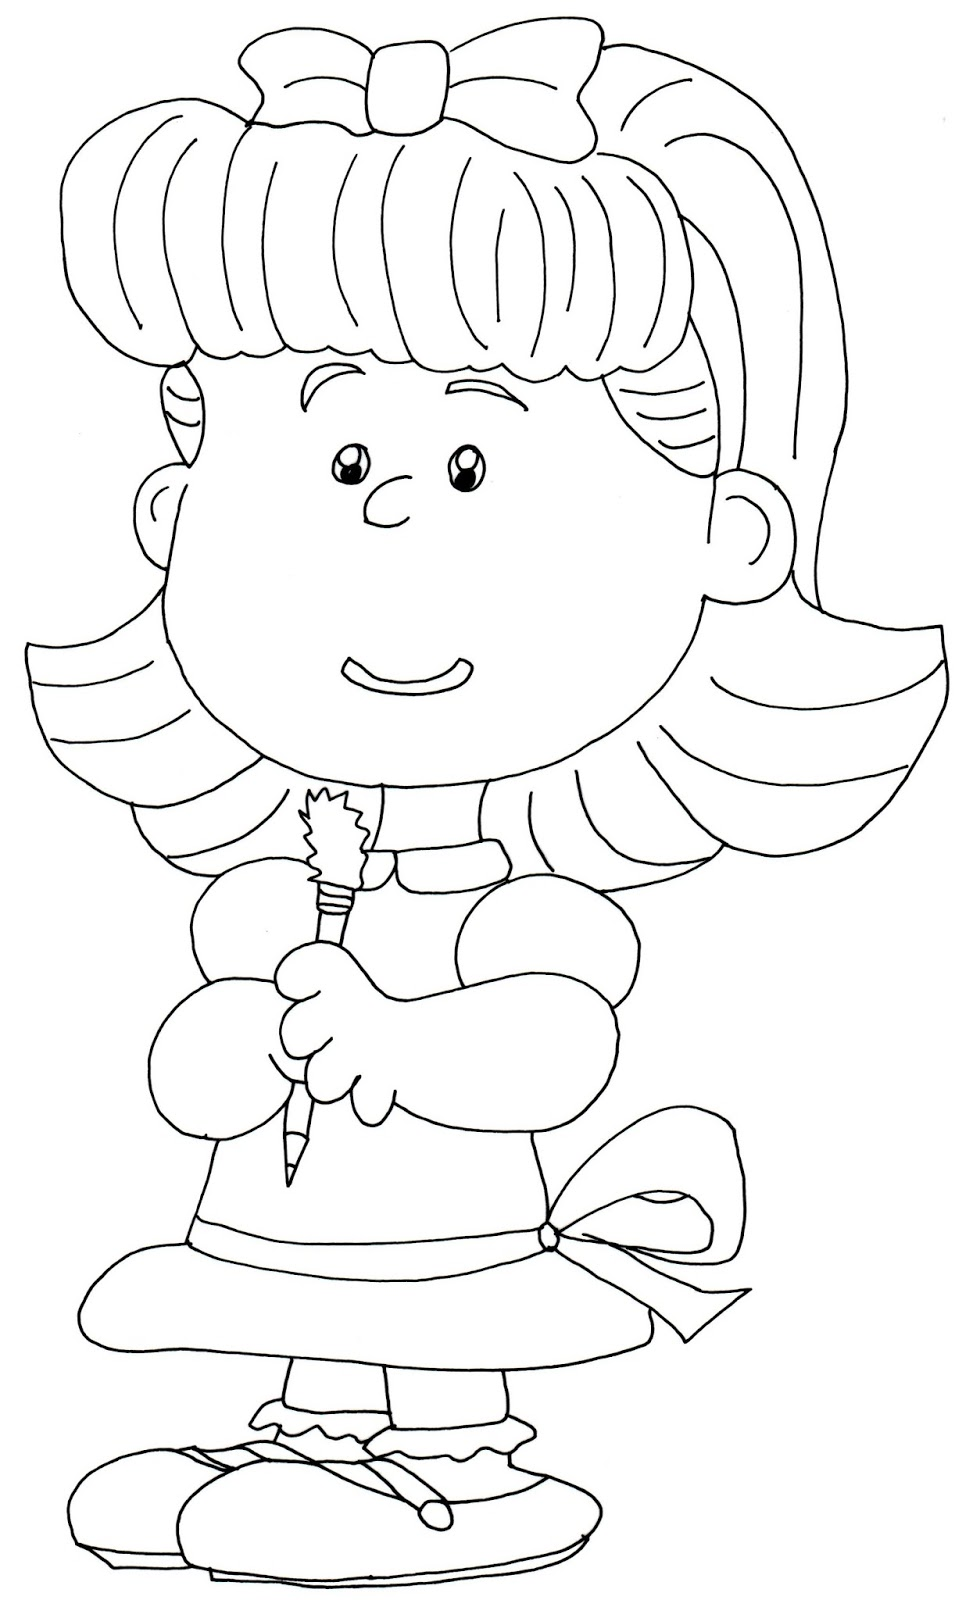 973x1600 Free Charlie Brown Snoopy And Peanuts Coloring Pages January